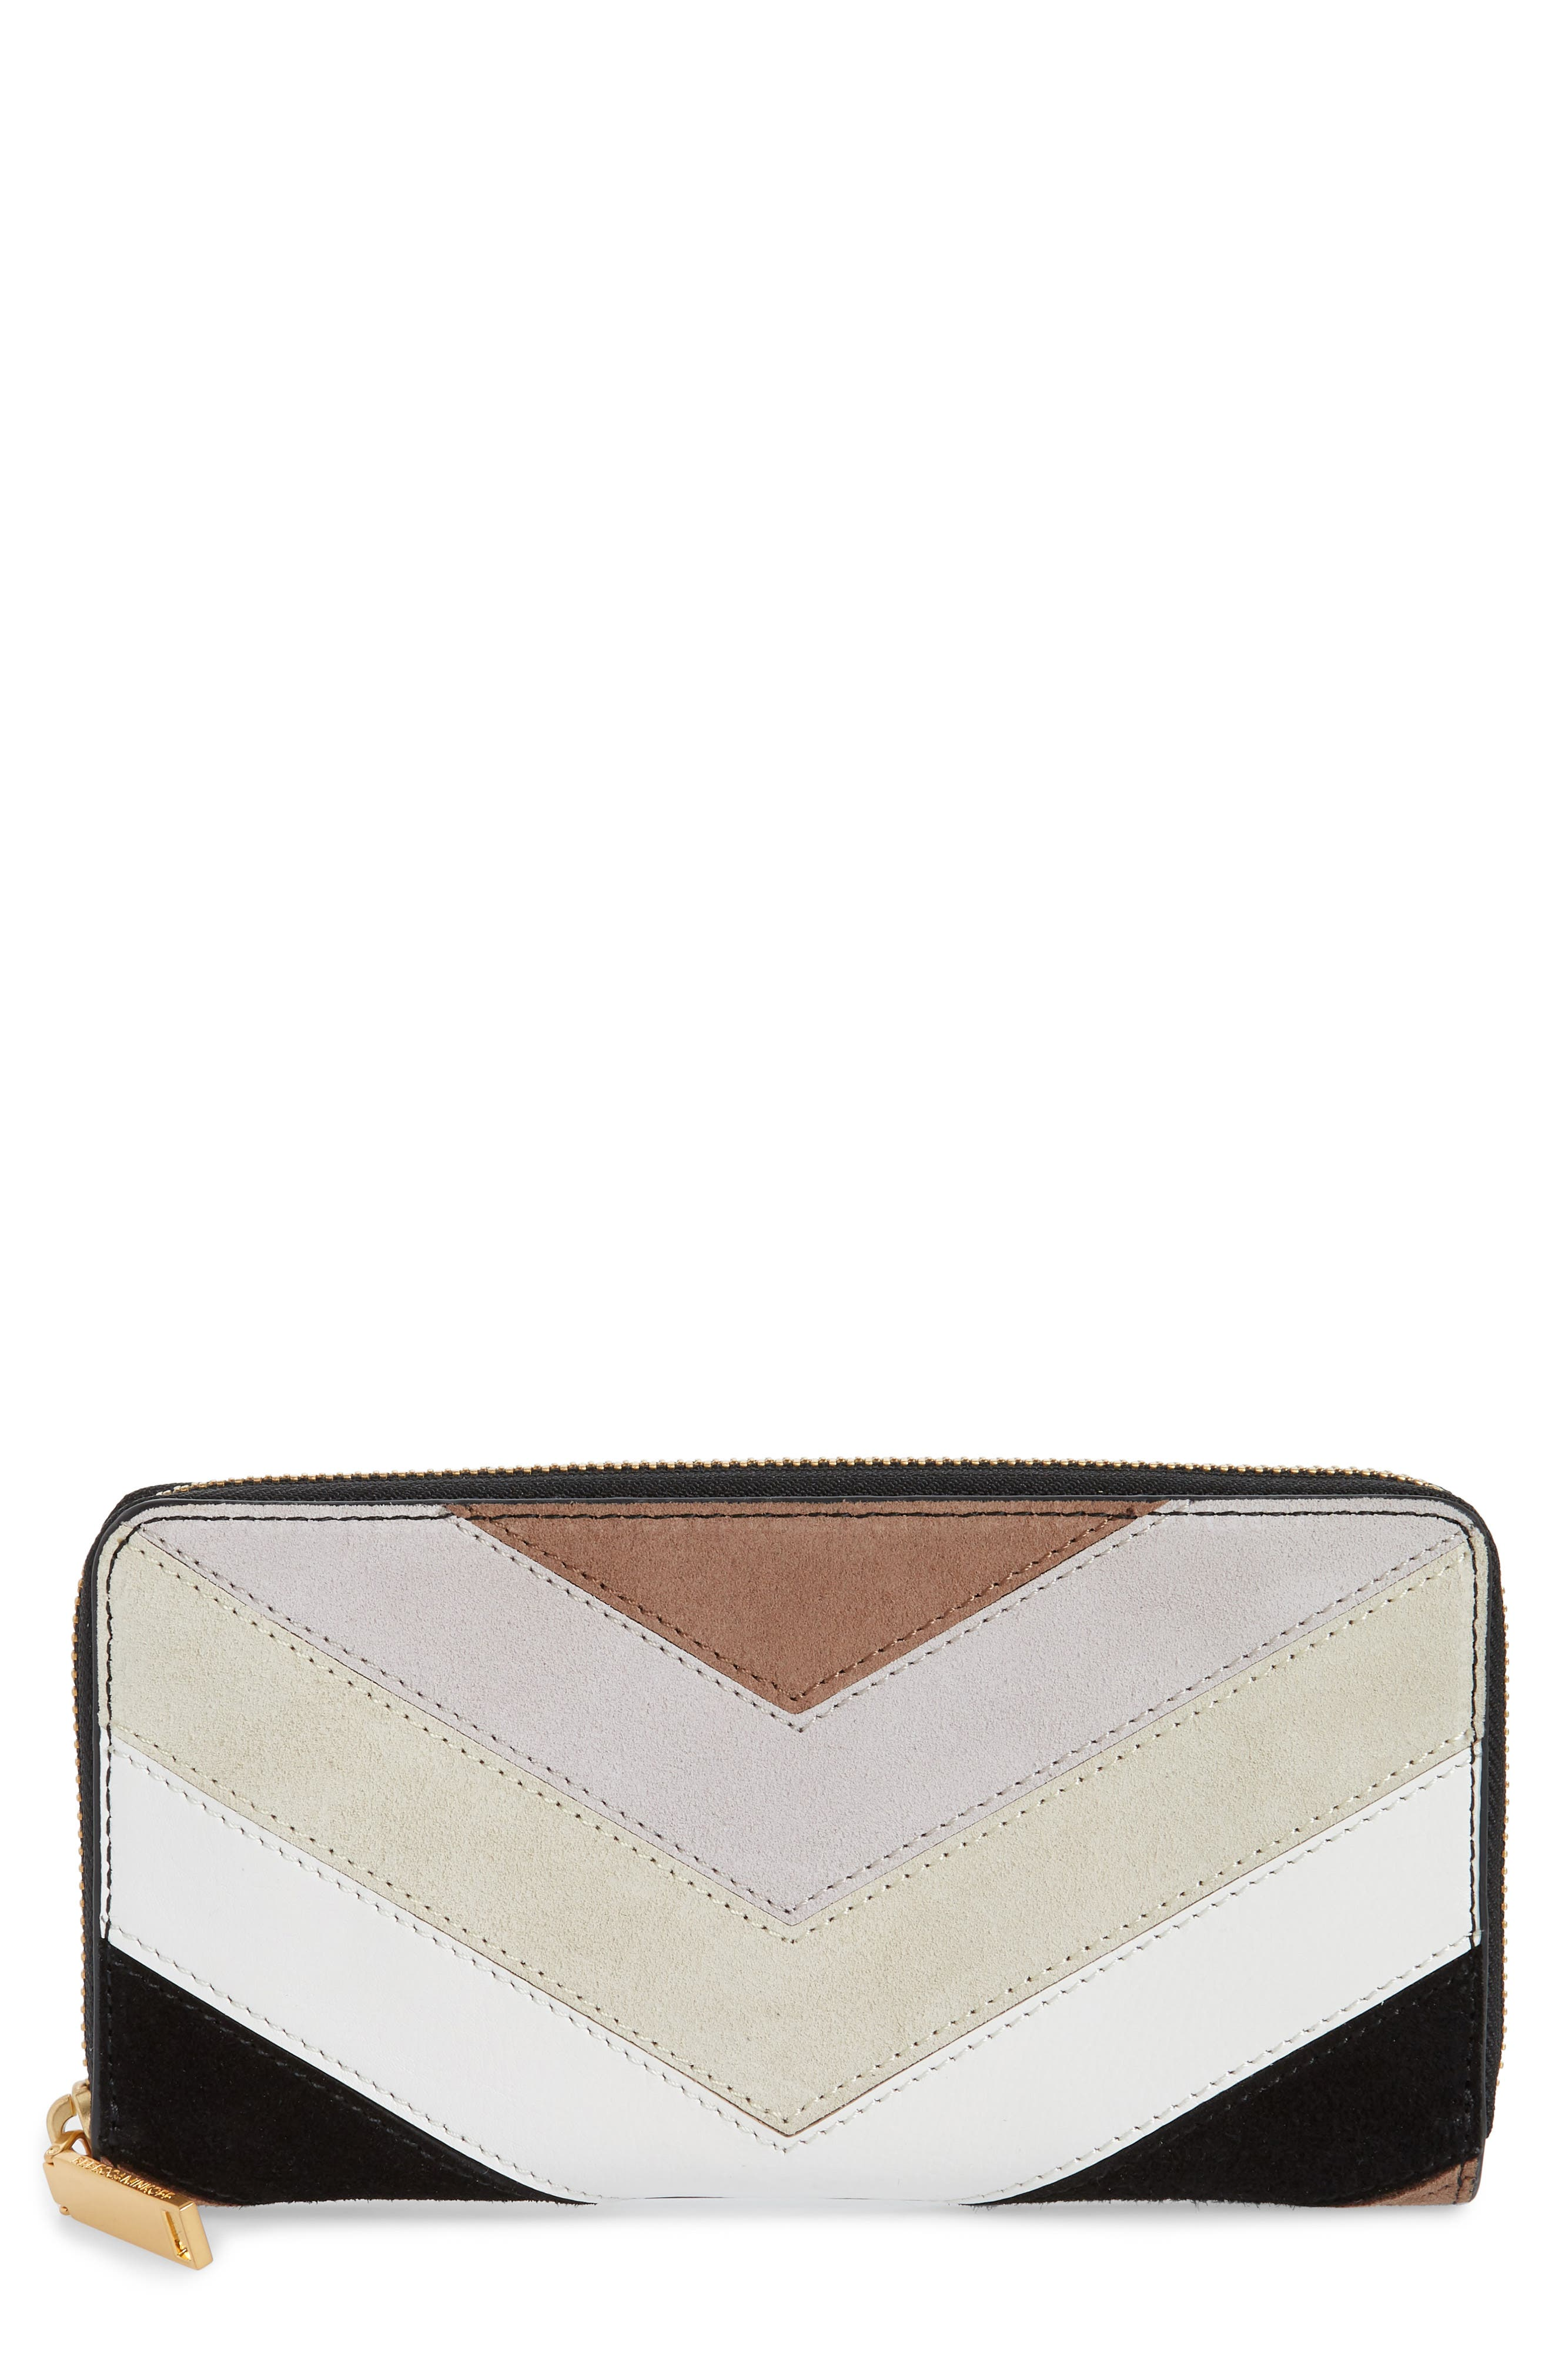 Chevron Quilted Suede Continental Wallet,                             Main thumbnail 1, color,                             Taupe Multi